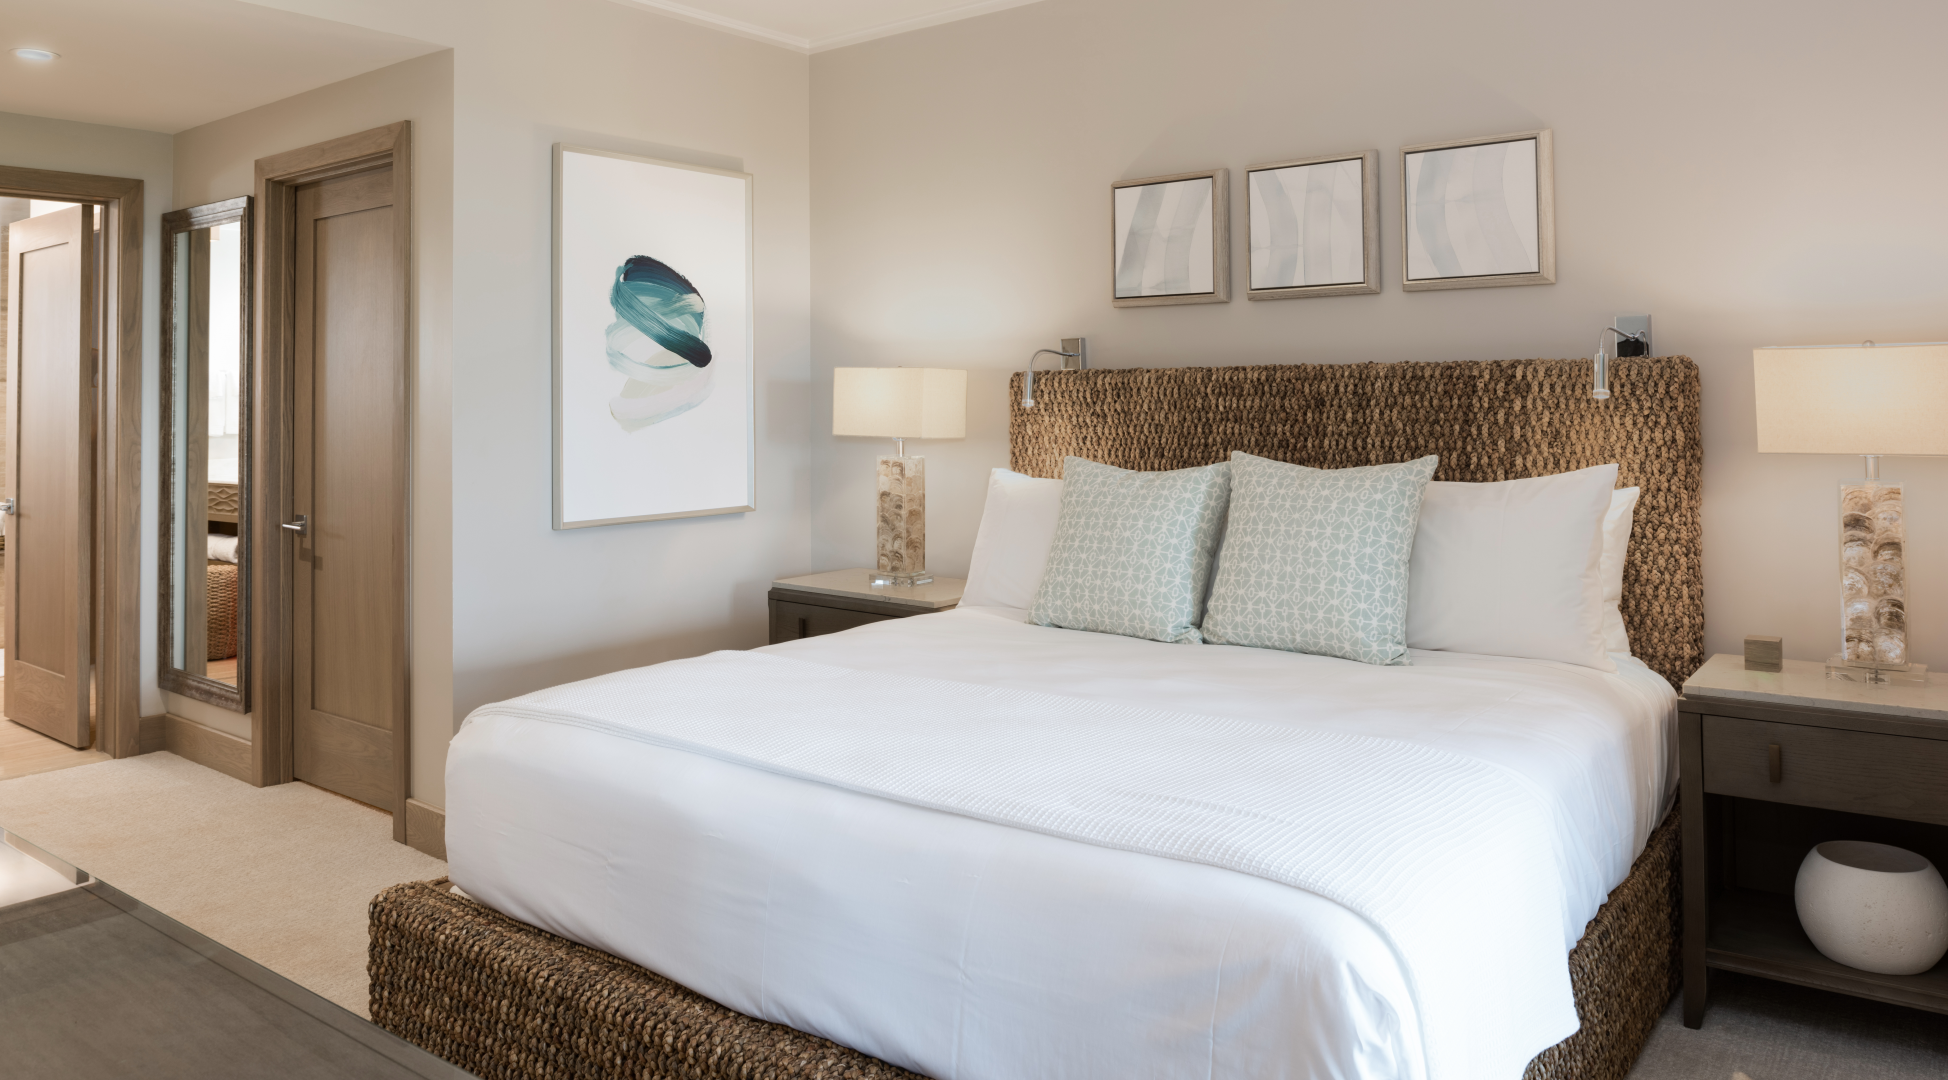 The second bedroom also comes equipped with an inviting king-size bed.